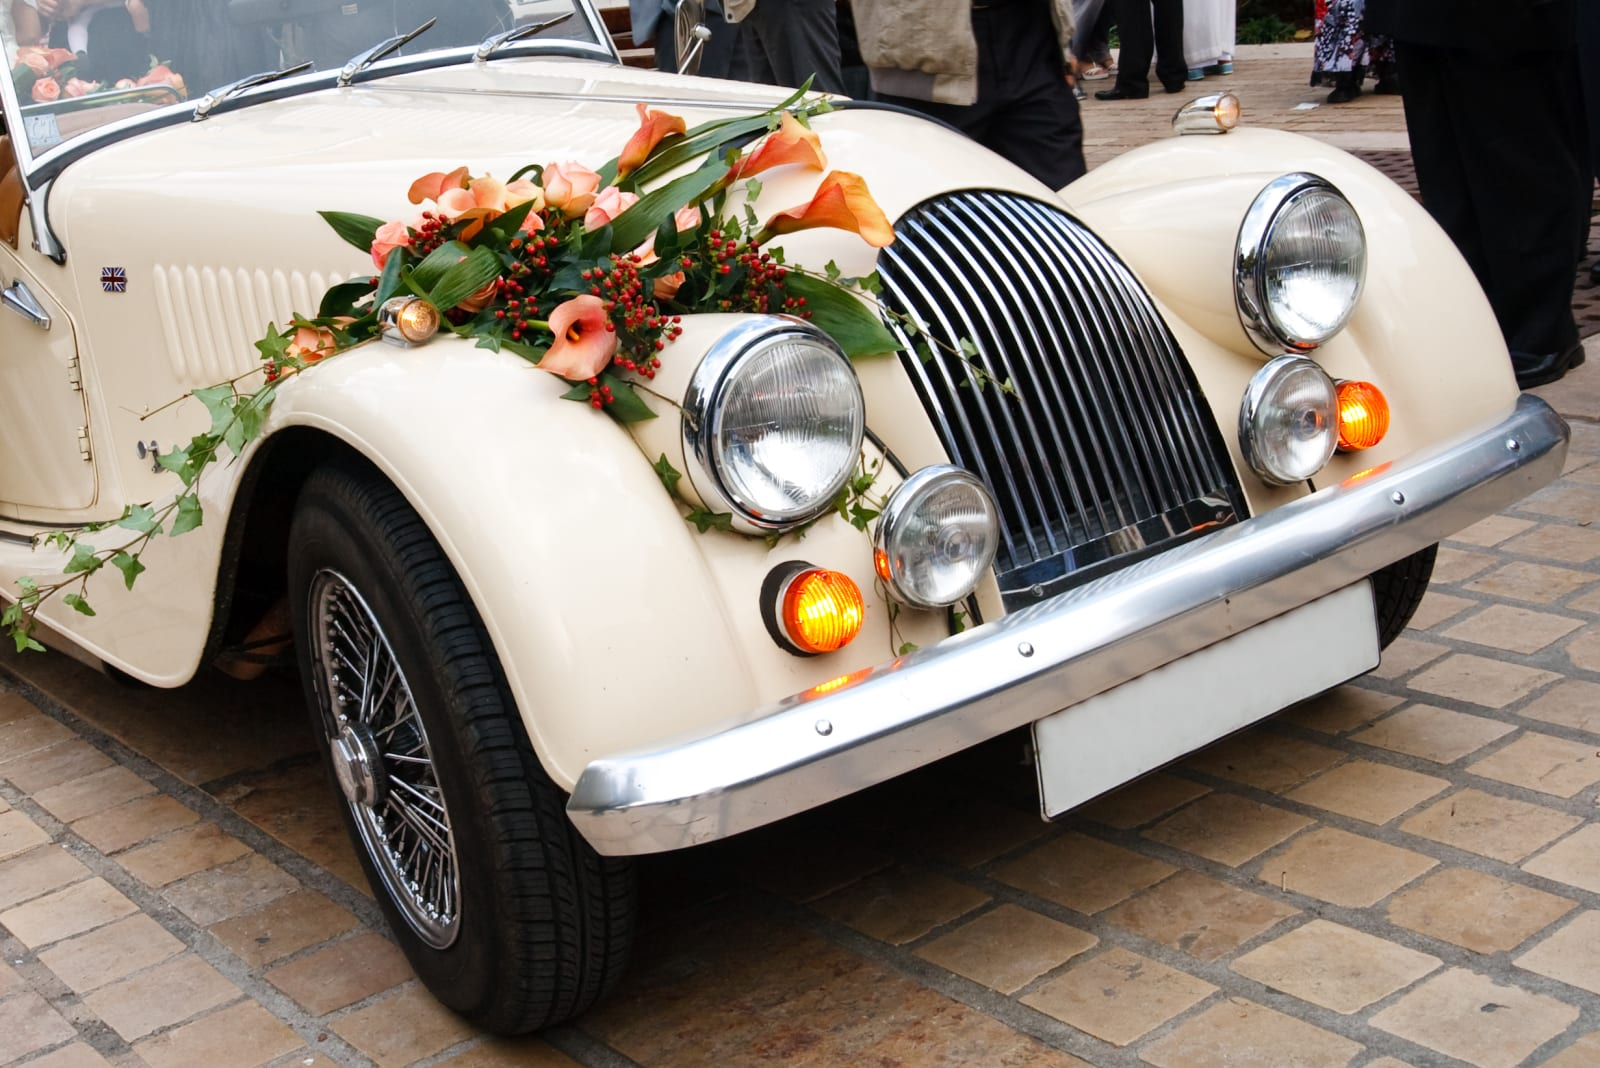 Picture of a vintage wedding car